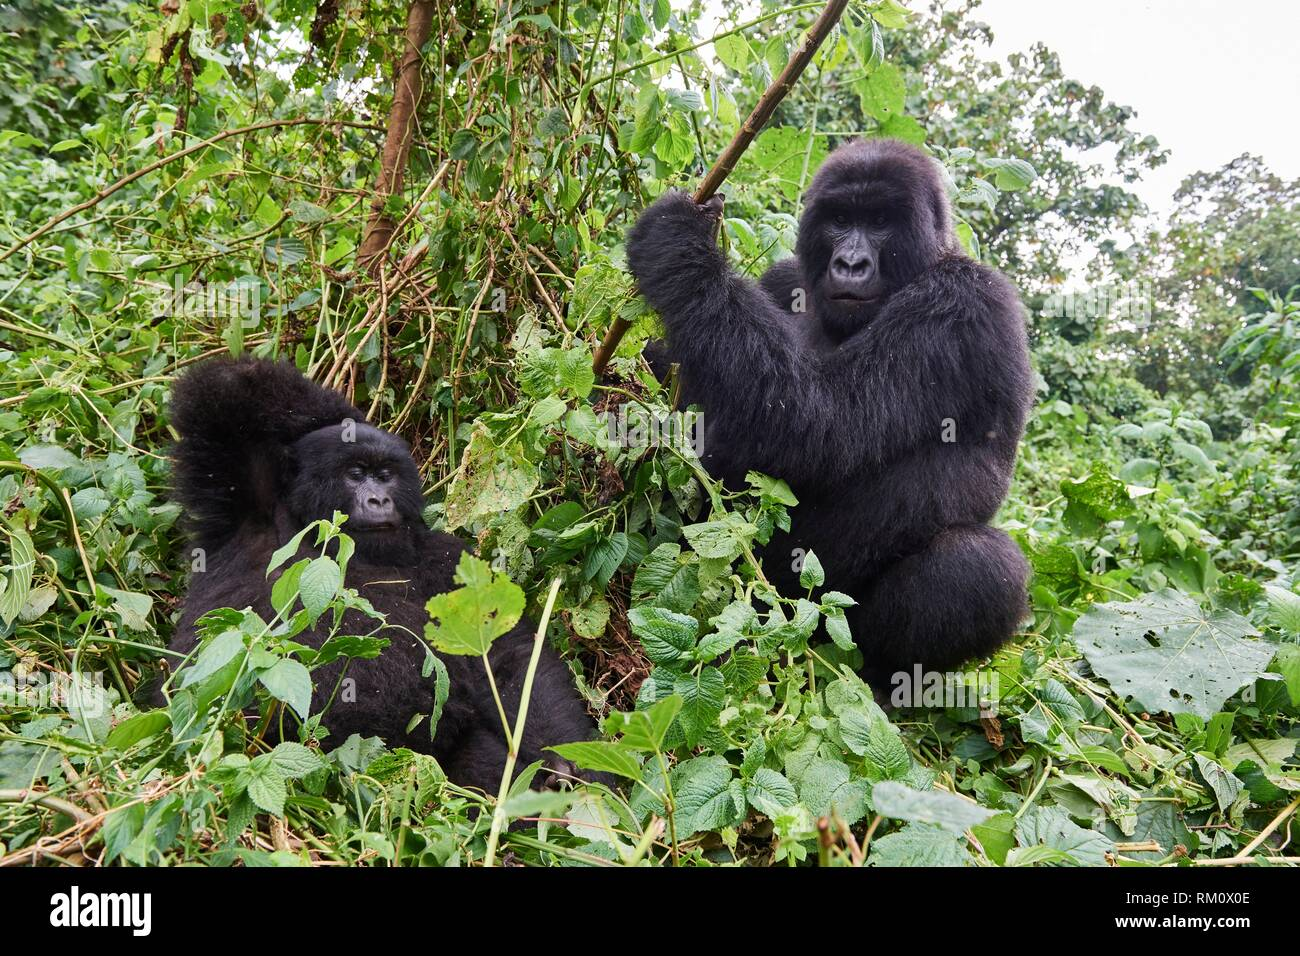 Silverback Mountain gorilla (Gorilla beringei beringei) with female. Virunga National Park, North Kivu, Democratic Republic of Congo, Africa. - Stock Image